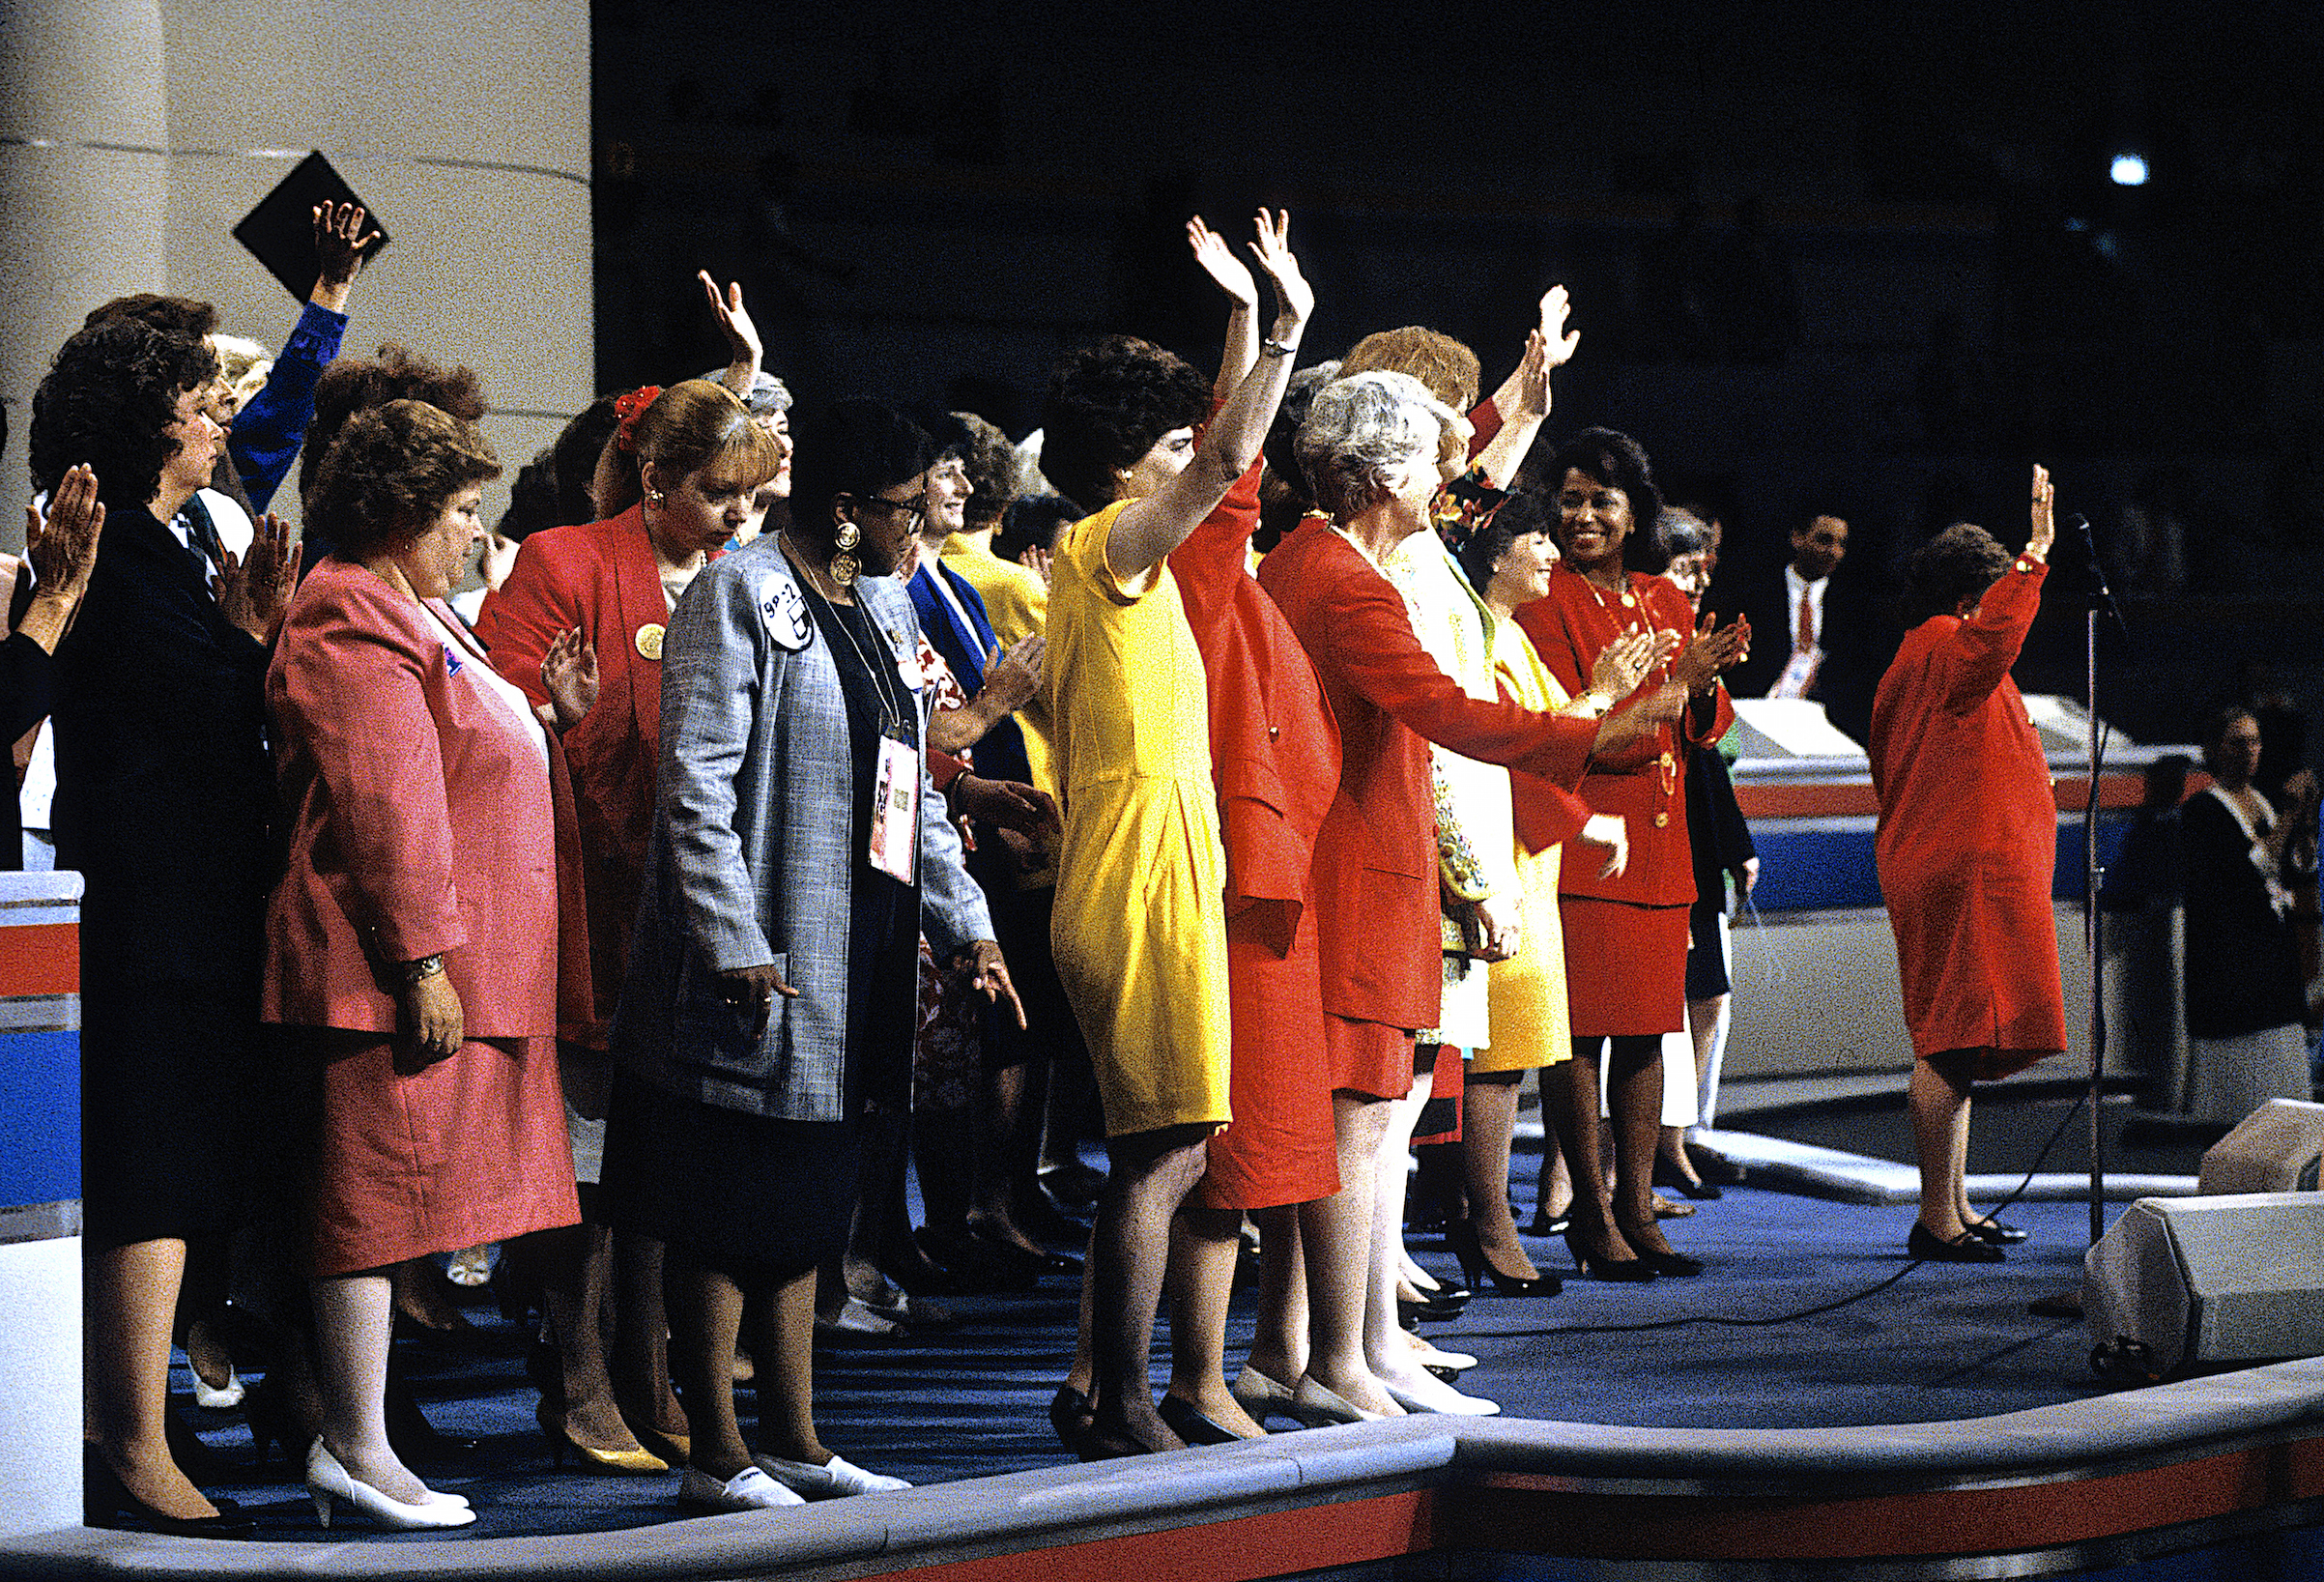 Barbara Jordan, Barbara A. Mikulski, Carol Moseley Braun, Dianne Feinstein, Barbara Boxer, Maxine Waters, and Geraldine Ferraro, among others, on stage at the beginning of the Democratic National Convention in July of 1992.